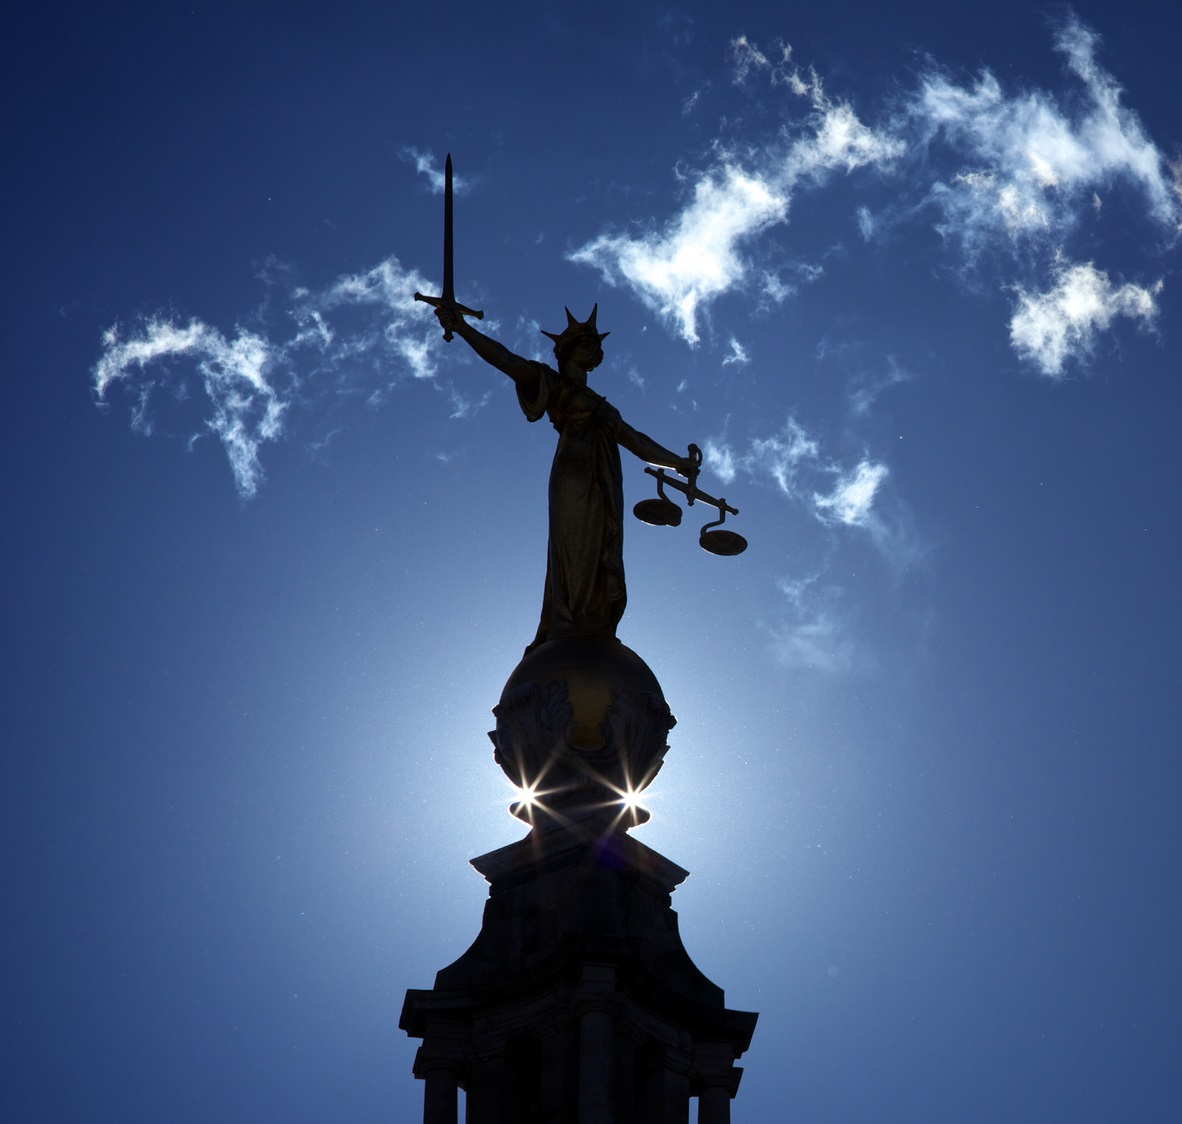 A statue of justice silhouetted against the sky.